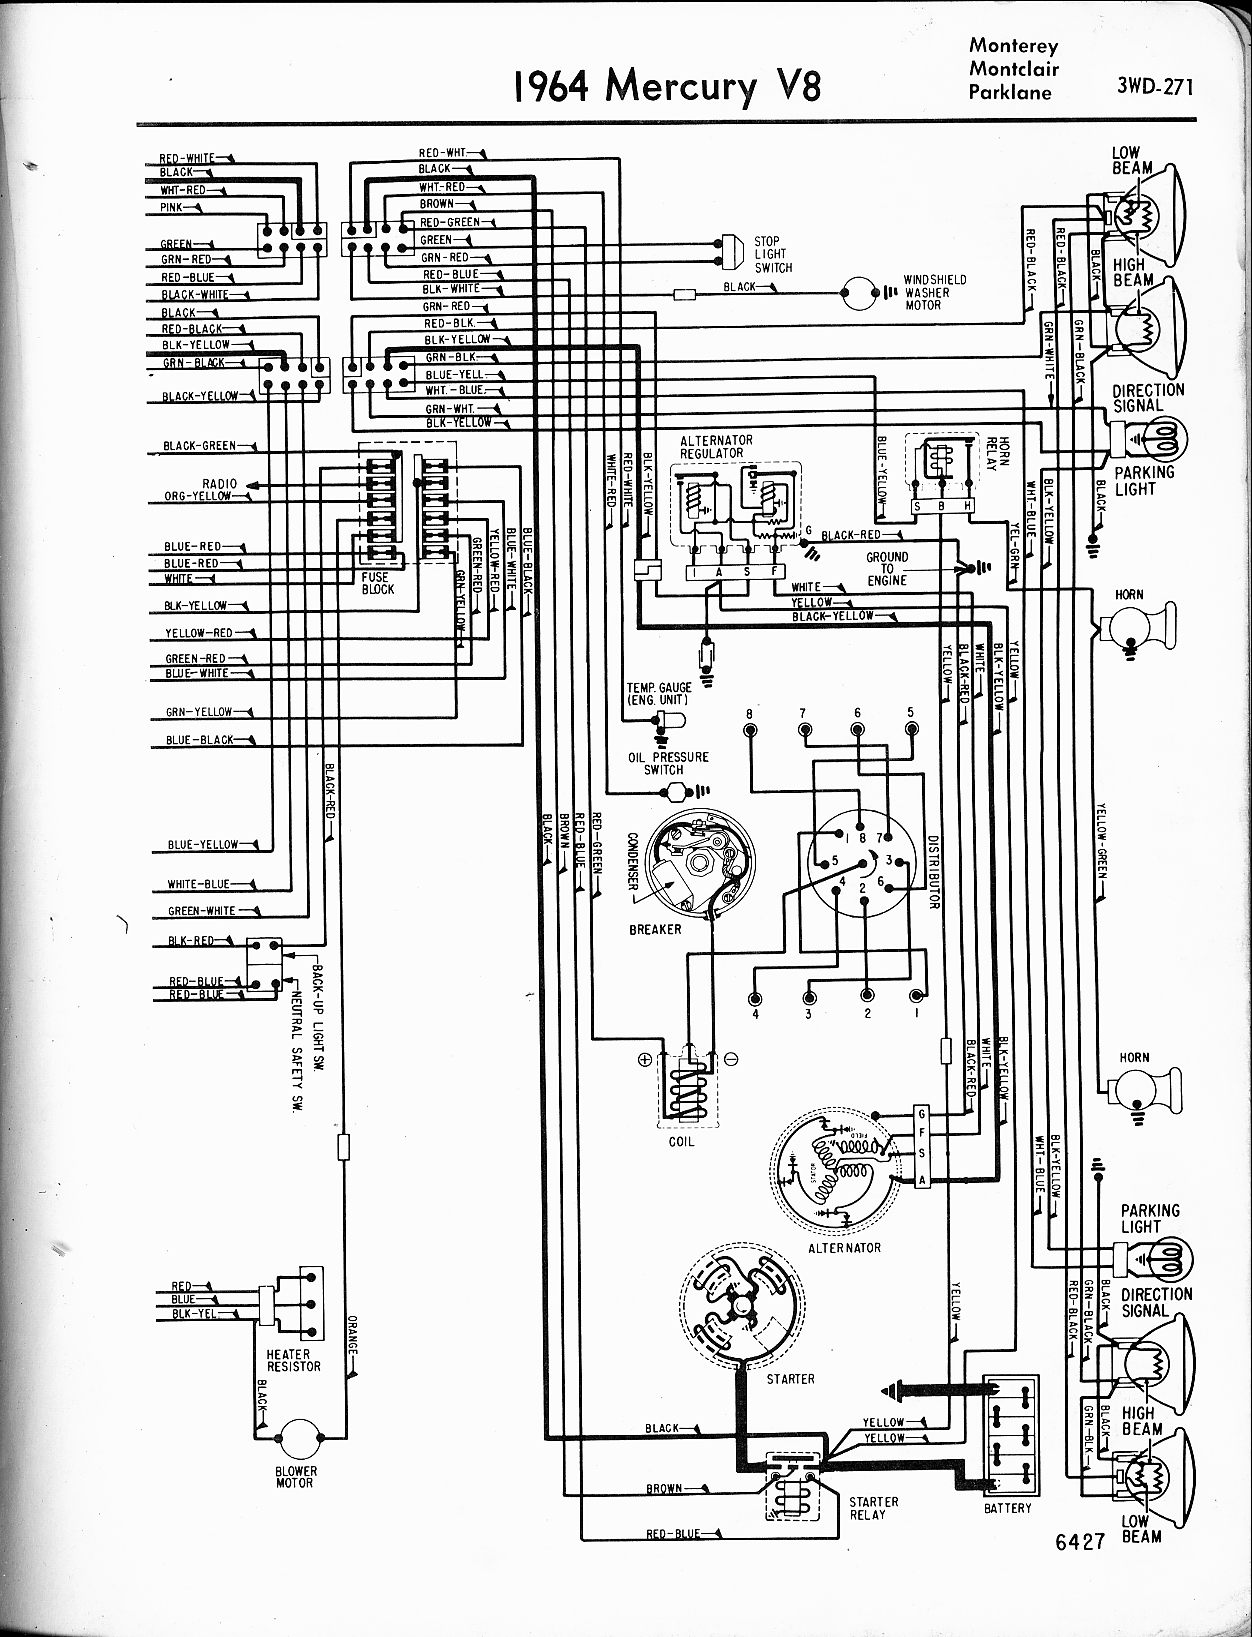 MWire5765 271 mercury wiring diagrams the old car manual project 65 comet wiring harness at gsmportal.co